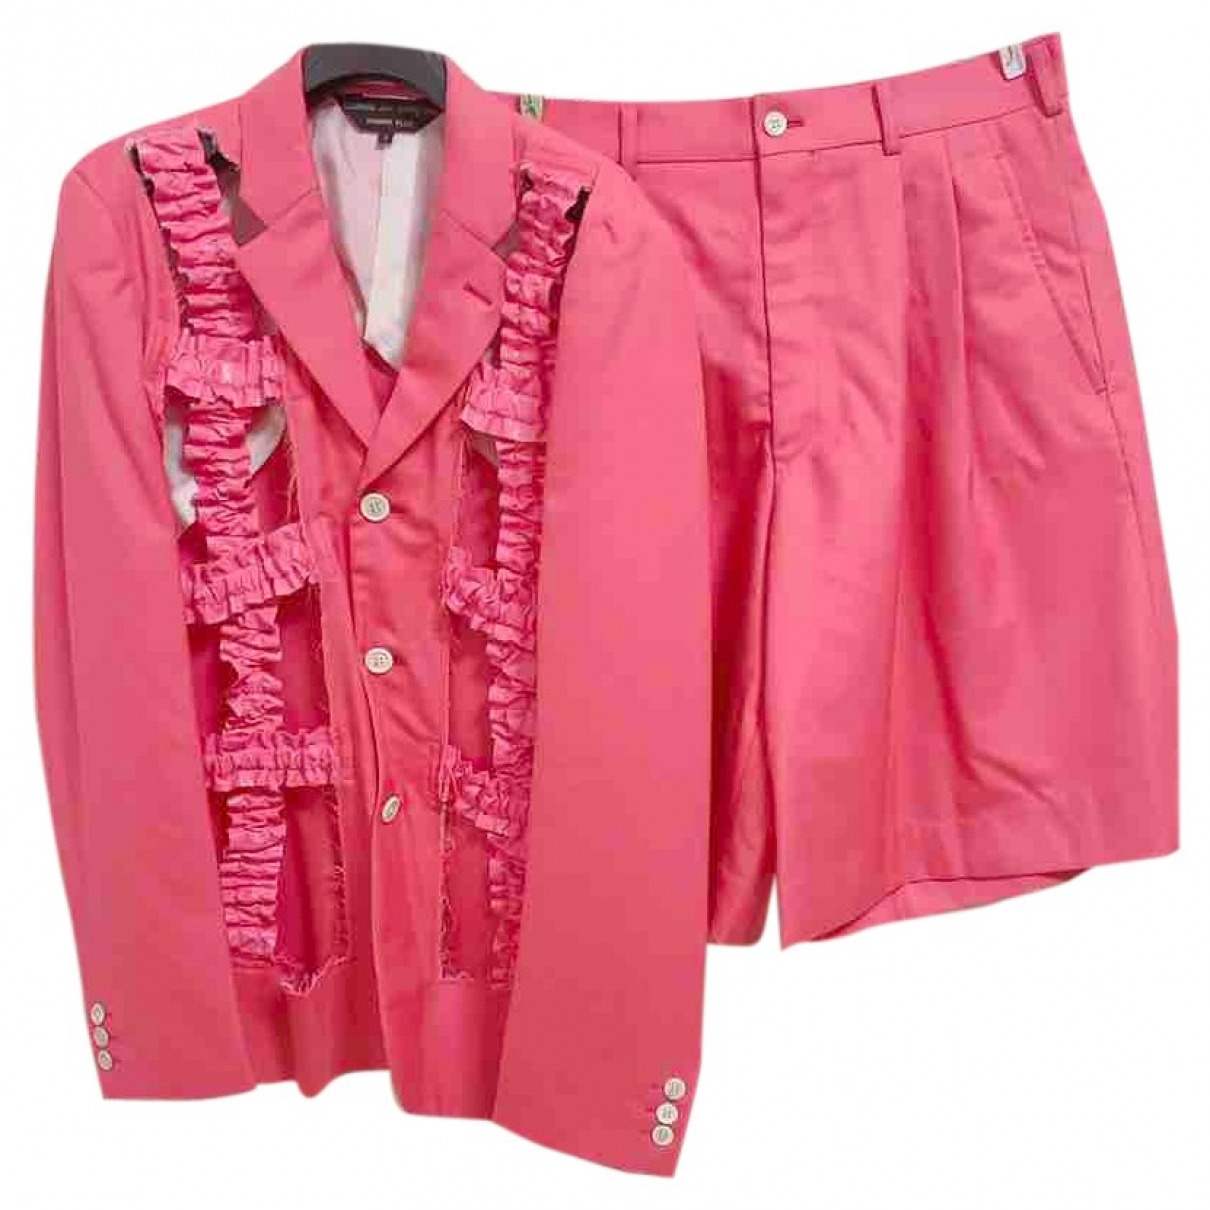 Comme Des Garcons \N Anzuege in  Rosa Baumwolle